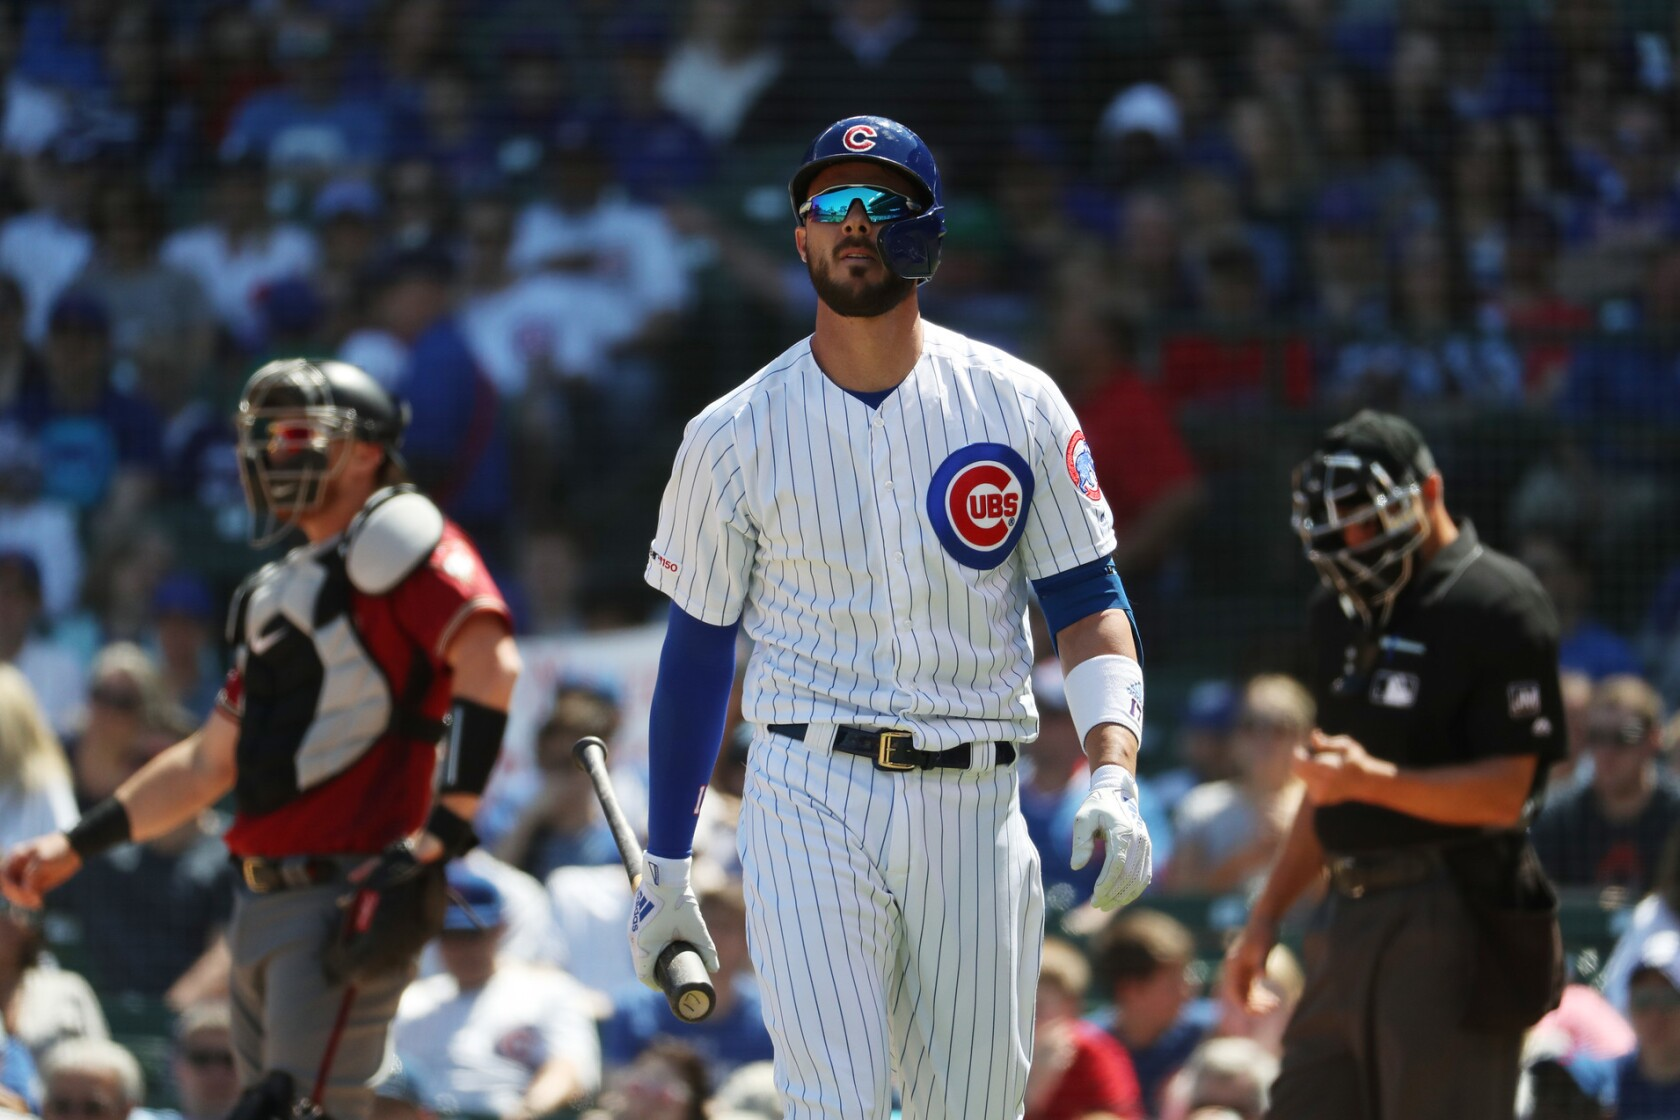 Kris Bryant relishes early Mother's Day gift - Los Angeles Times